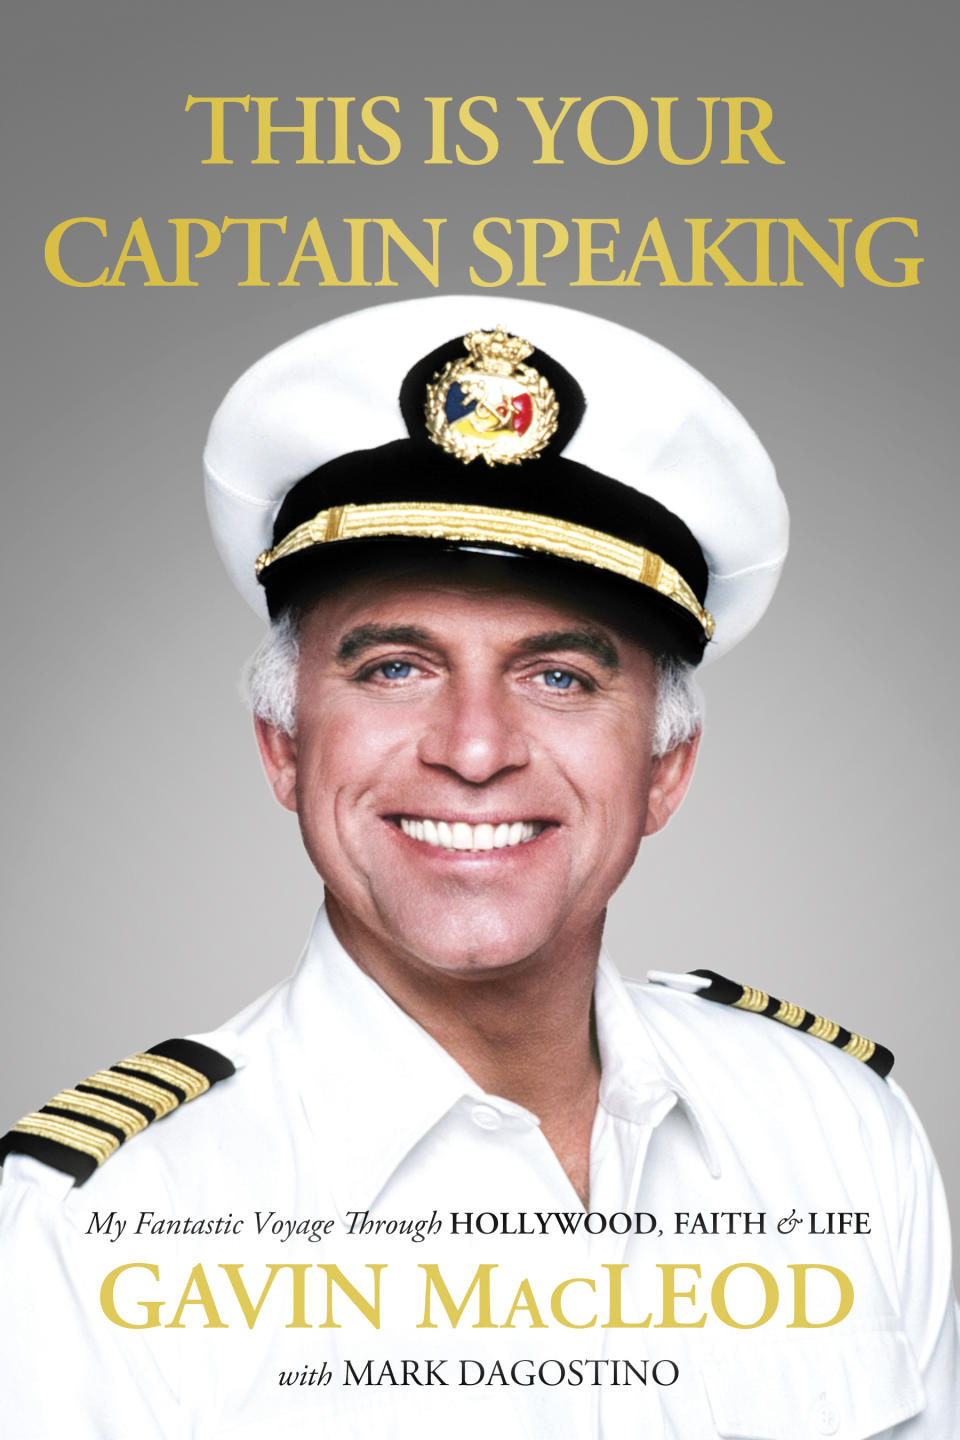 "This photo released by W Publishing Group shows the cover of the book, ""This is Your Captain Speaking."" The 82-year-old actor, Gavin MacLeod's autobiography will be released on Tuesday, Oct. 22, 2013. (AP Photo/W Publishing Group)"